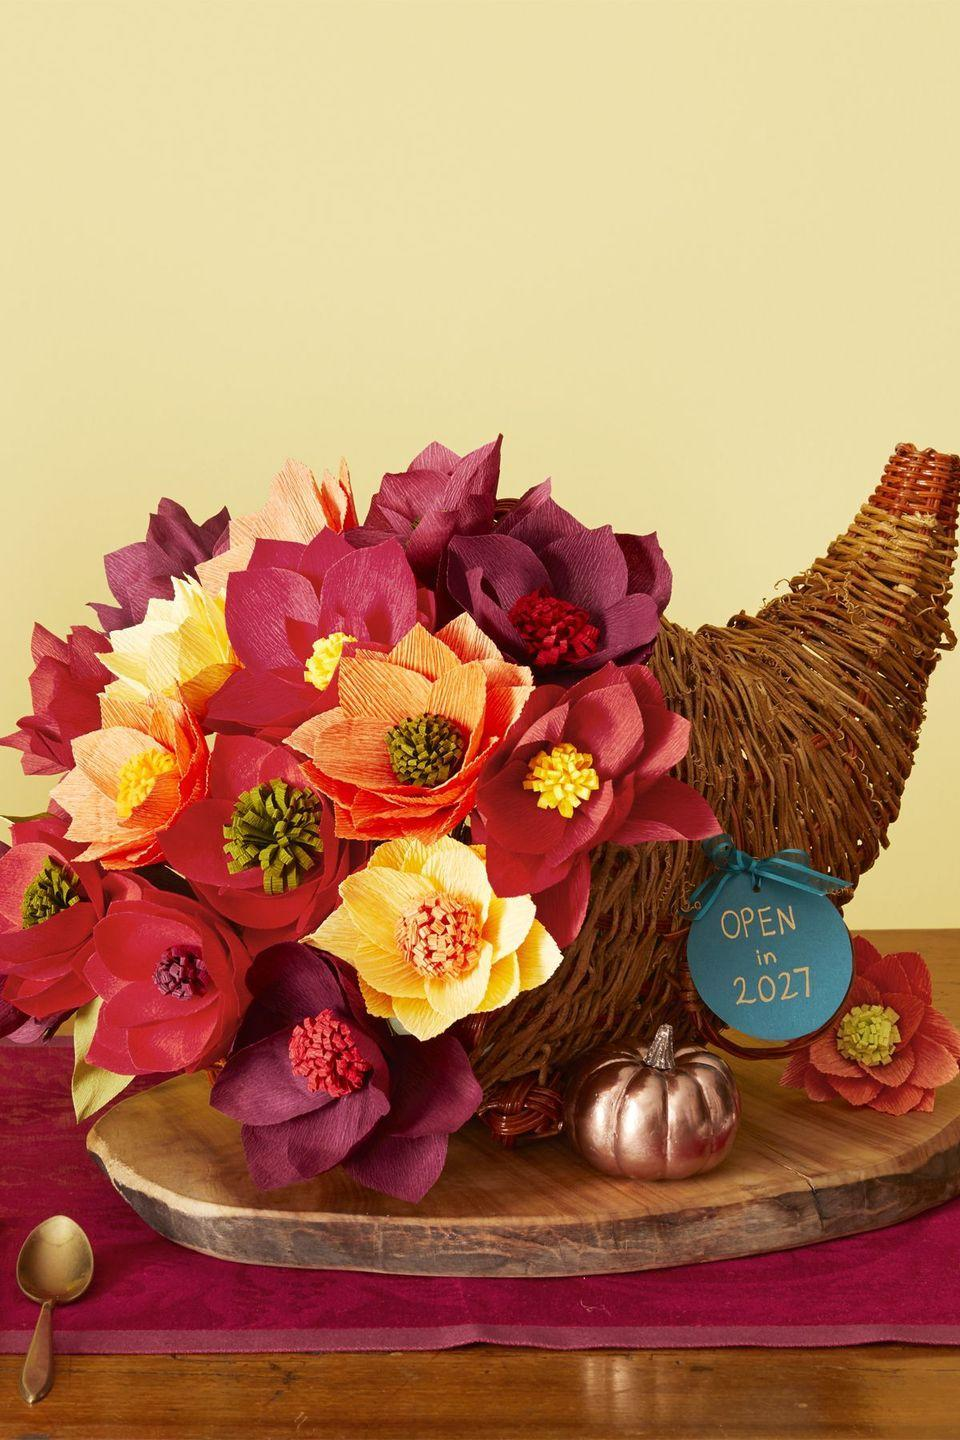 "<p>Whether you DIY or buy them premade, crepe flowers will last way longer than any grocery-store bouquet. Poke the stems into a floral foam-filled basket for a centerpiece-worthy cornucopia. </p><p><a class=""link rapid-noclick-resp"" href=""https://www.amazon.com/Handcrafted-Flowers-Backdrop-Birthday-Decoration/dp/B07S5K4FFS/ref=sr_1_46?dchild=1&keywords=crepe+flowers&qid=1595447121&sr=8-46&tag=syn-yahoo-20&ascsubtag=%5Bartid%7C10055.g.1681%5Bsrc%7Cyahoo-us"" rel=""nofollow noopener"" target=""_blank"" data-ylk=""slk:SHOP CREPE FLOWERS"">SHOP CREPE FLOWERS</a><br></p><p><em><a href=""https://www.womansday.com/home/decorating/g269/easy-fall-centerpiece-ideas-124043/?slide=11"" rel=""nofollow noopener"" target=""_blank"" data-ylk=""slk:Get the tutorial at Woman's Day »"" class=""link rapid-noclick-resp"">Get the tutorial at Woman's Day »</a></em></p>"